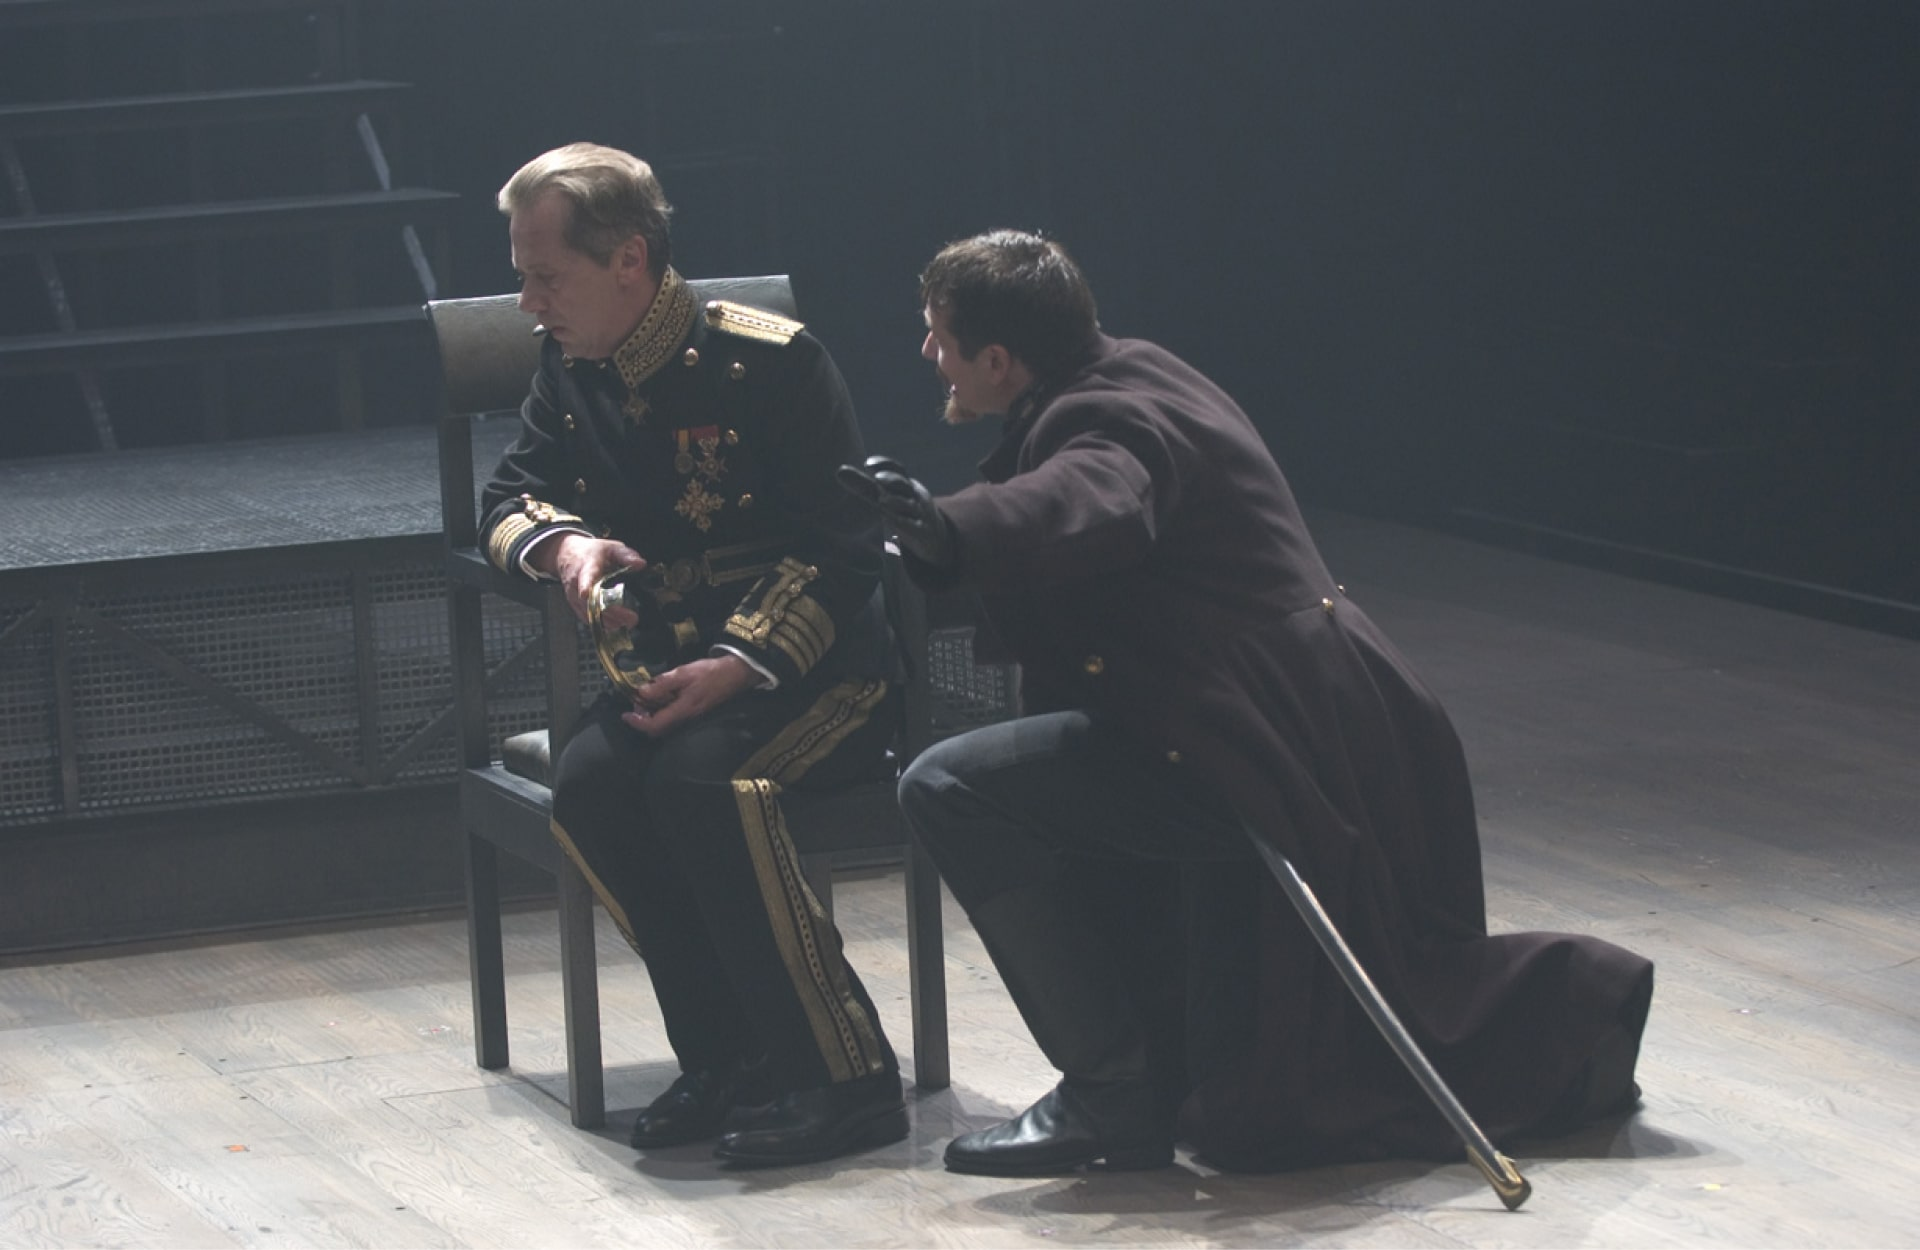 King sits on chair with man kneeling, in strong back light.